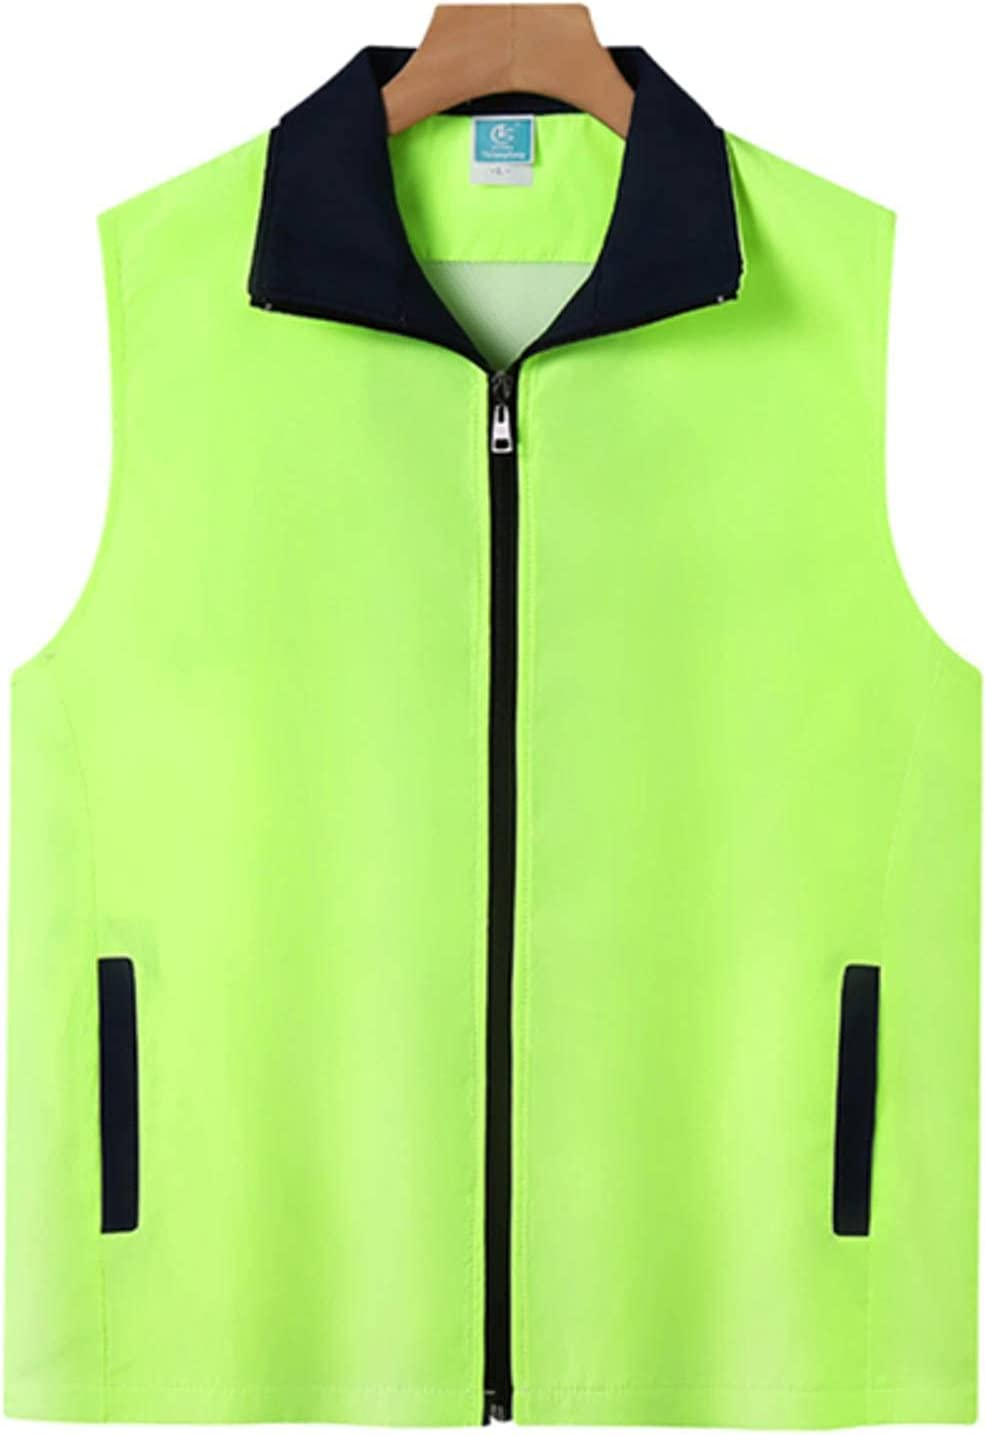 NC Men's Lapel Sleeveless Work Clothes Vest with Two Pockets Color-Blocking Composite Zipper Vest Breathable and Refreshing Jacket T253